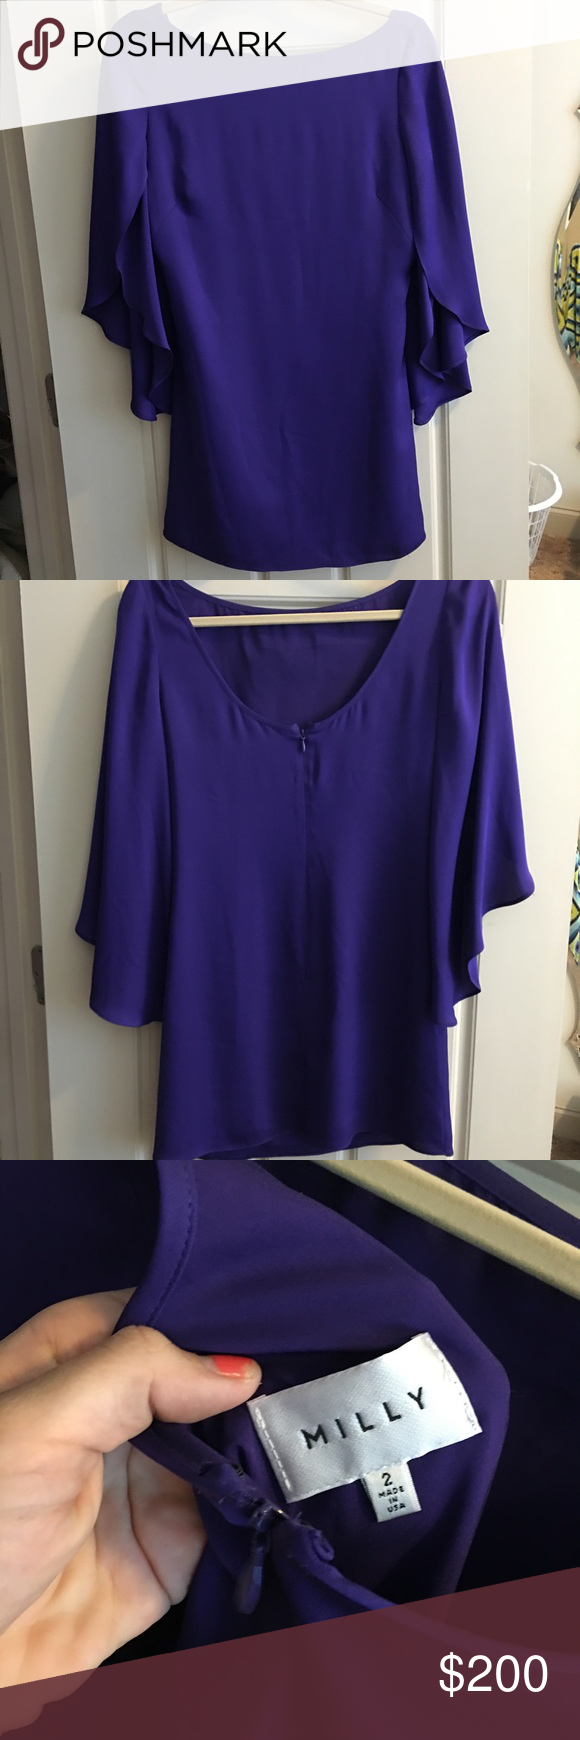 Milly Dress Purple silk mini dress with ruffle sleeves. Milly Dresses